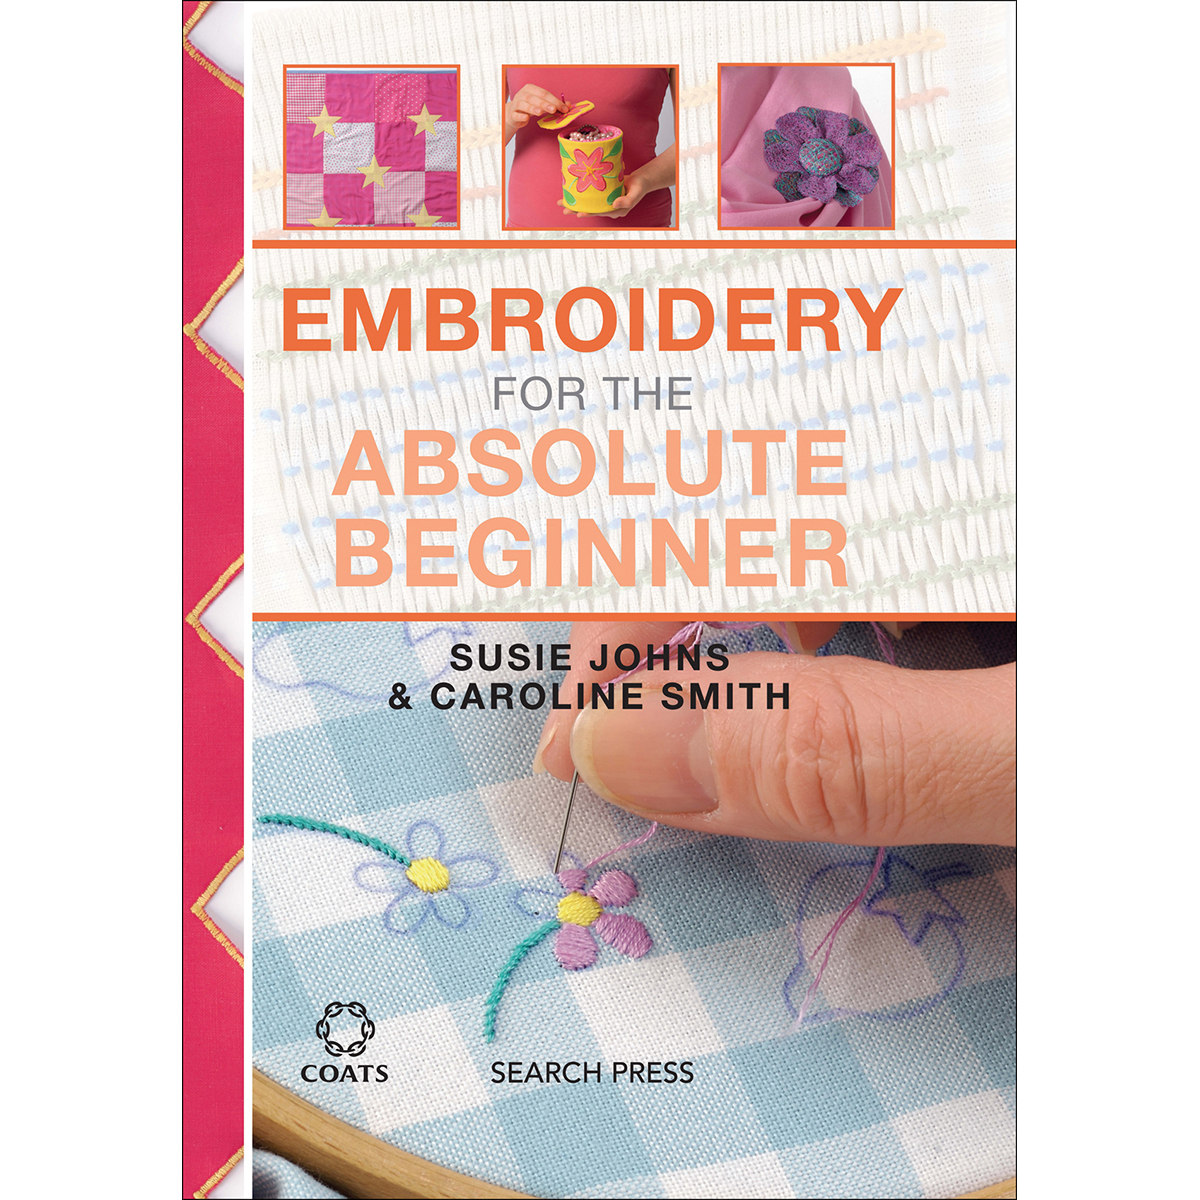 Search Press Books-Embroidery For The Absolute Beginner